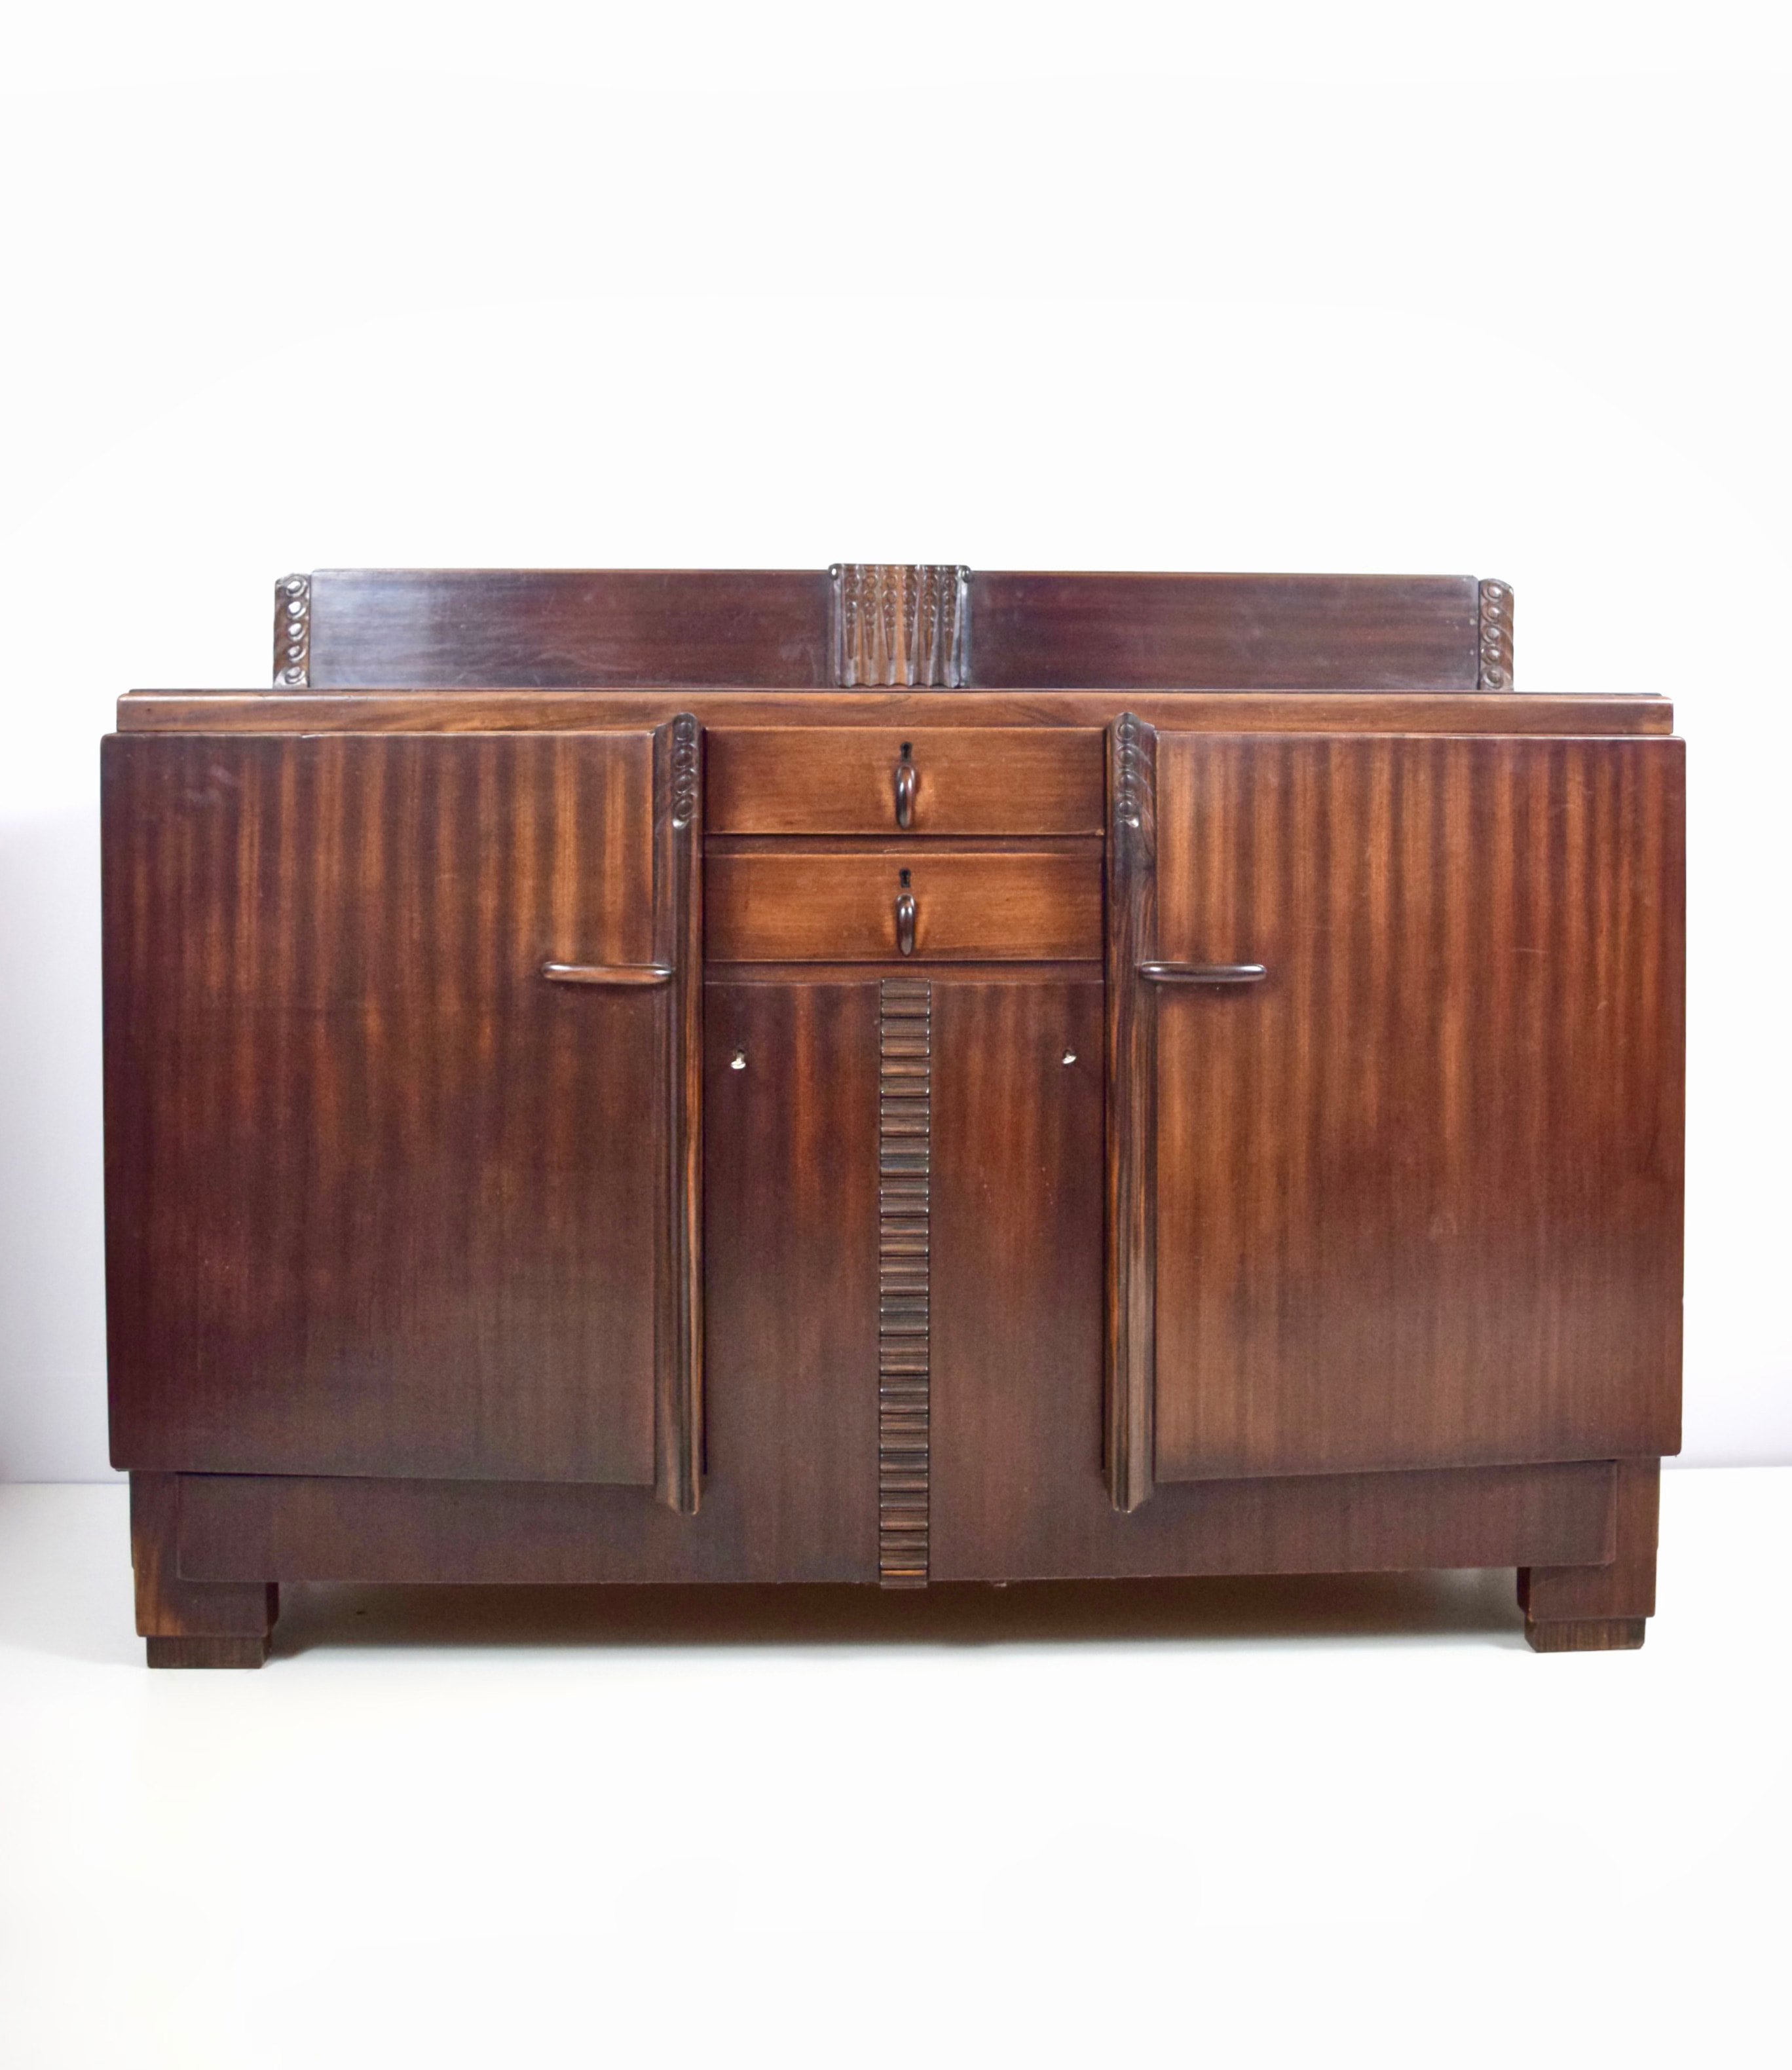 Amsterdam School Cabinet in Mahogany and Coromandel